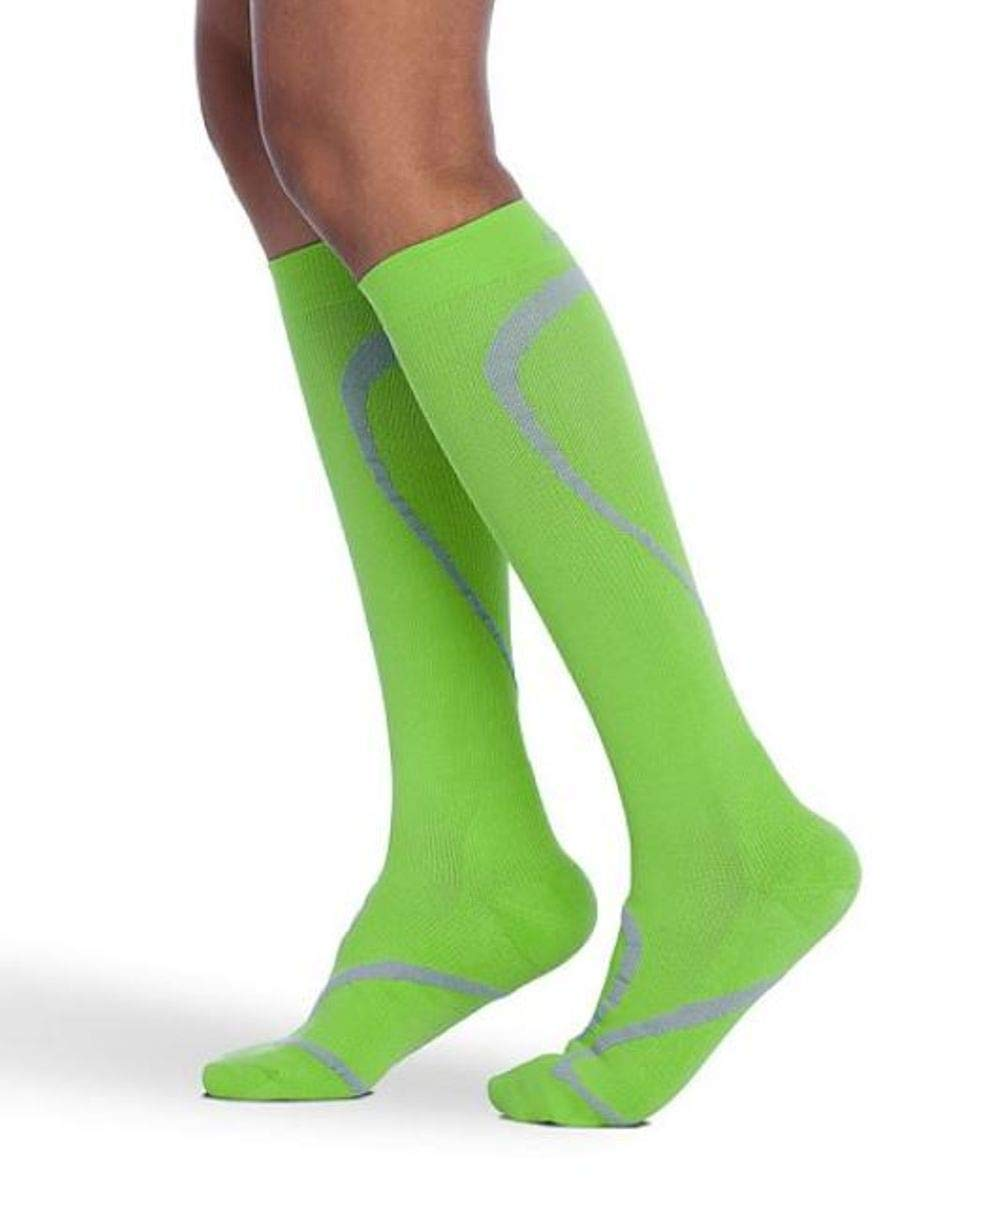 SIGVARIS Traverse Sock 412 Calf High Compression 20-30mmHg